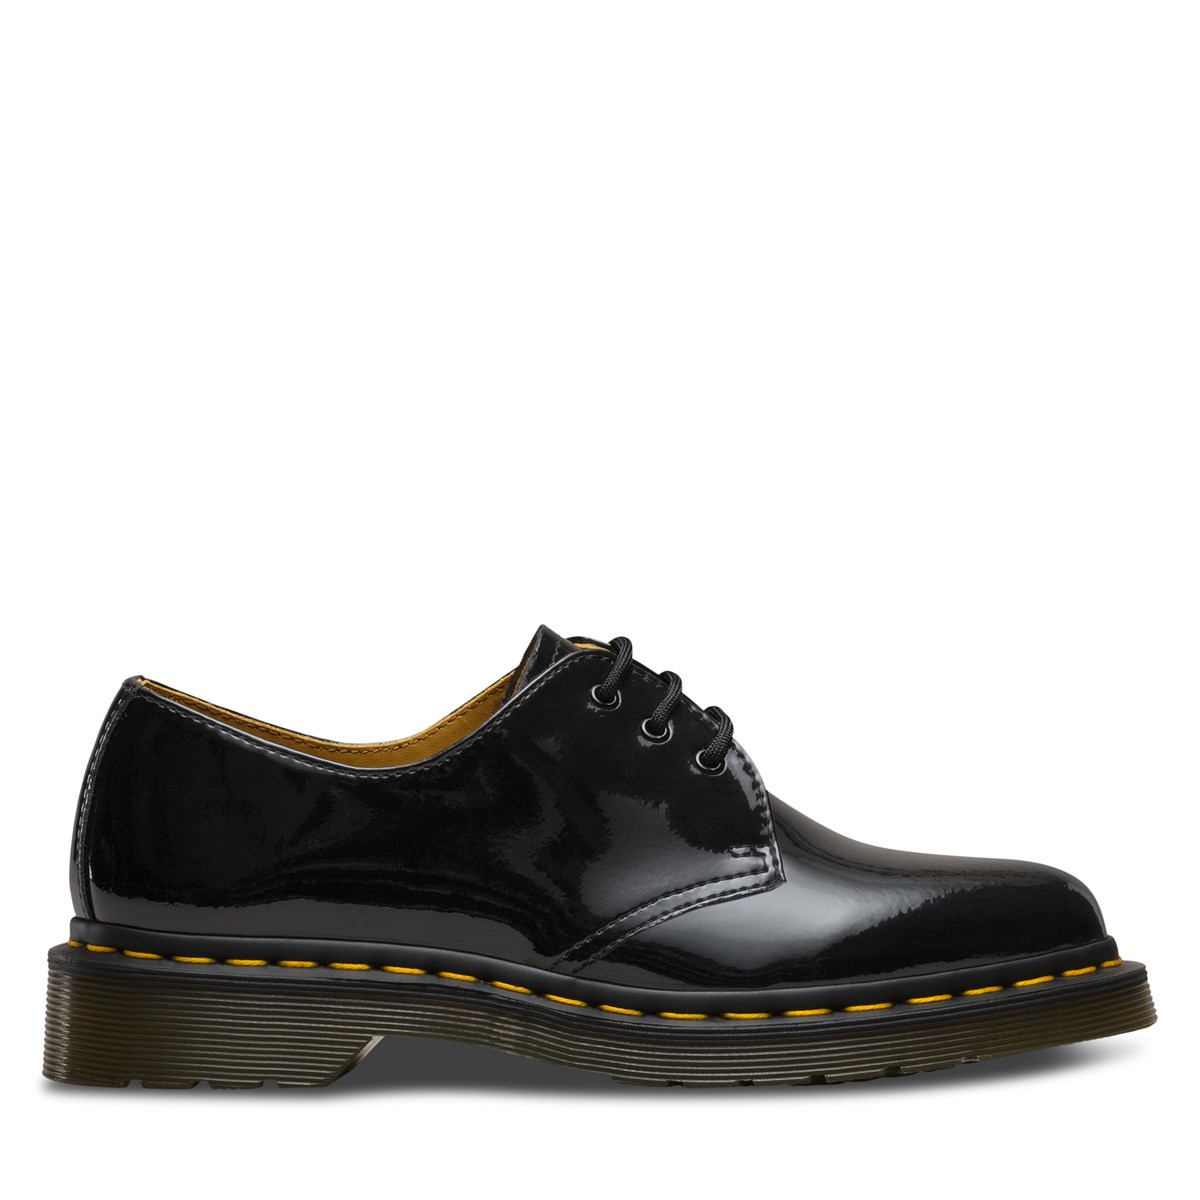 Women's 1461 Patent Shoes in Black